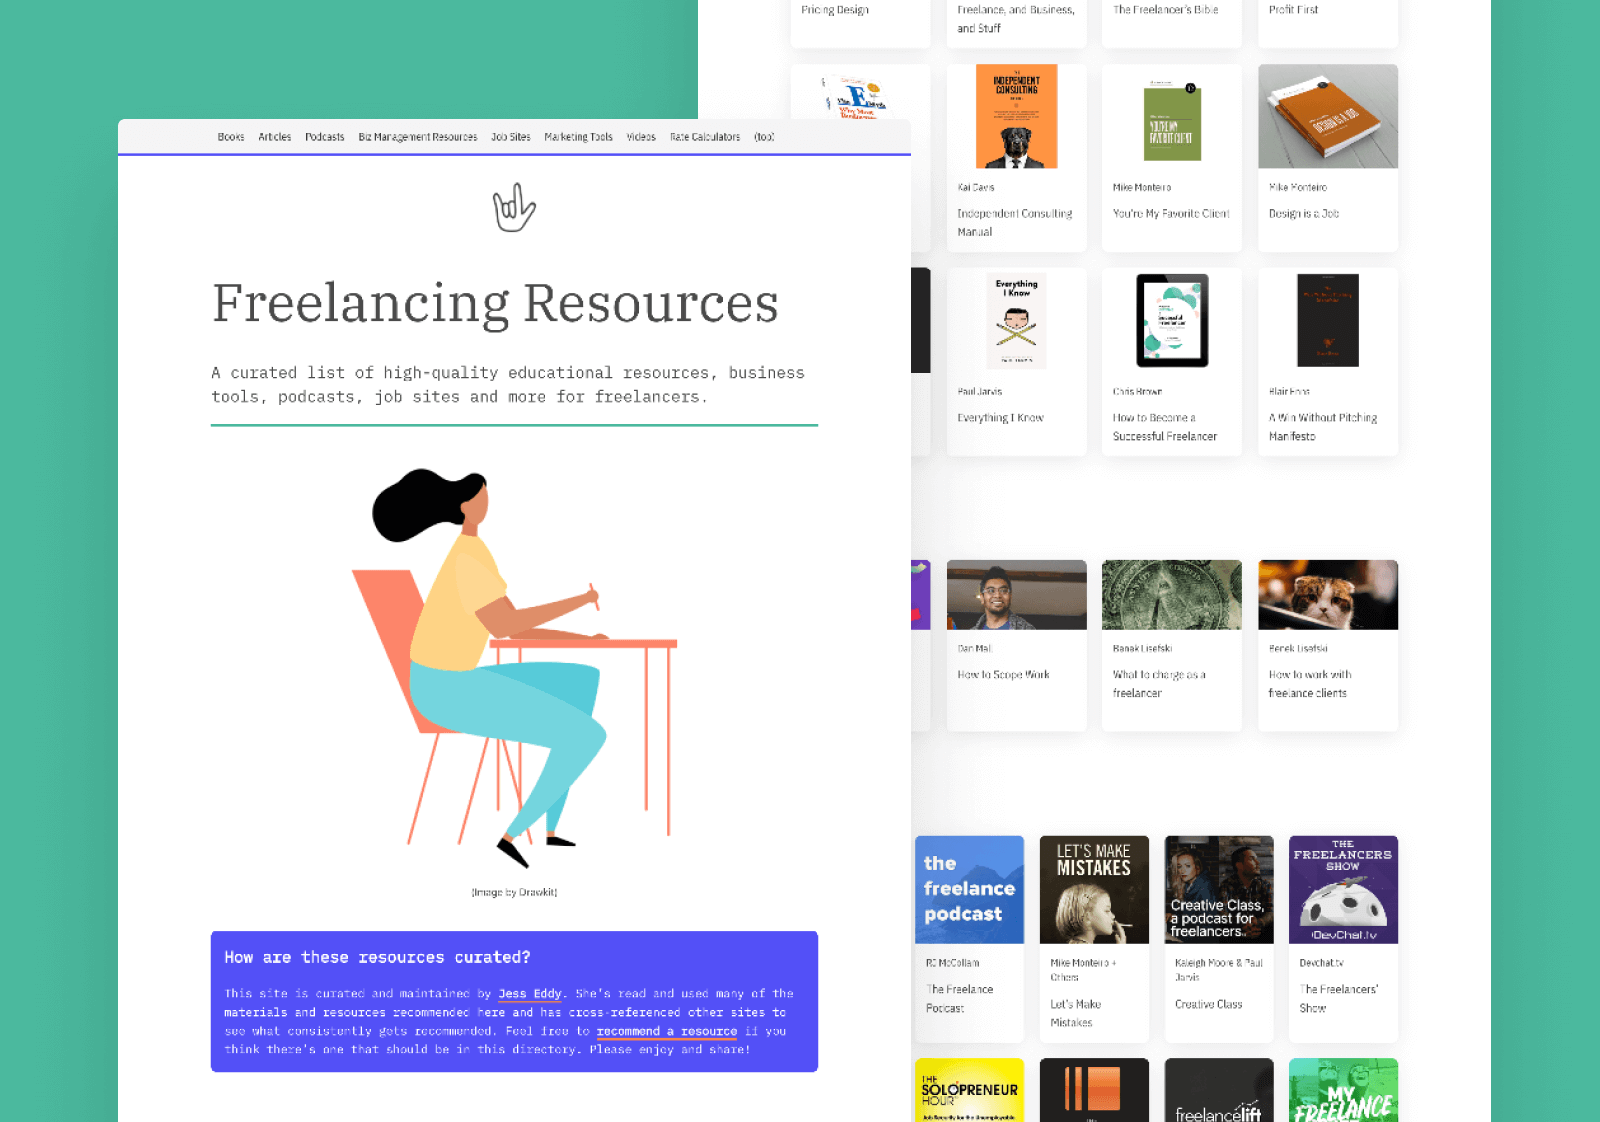 Freelancing Resources - A curated high-quality list of resources for freelancers.